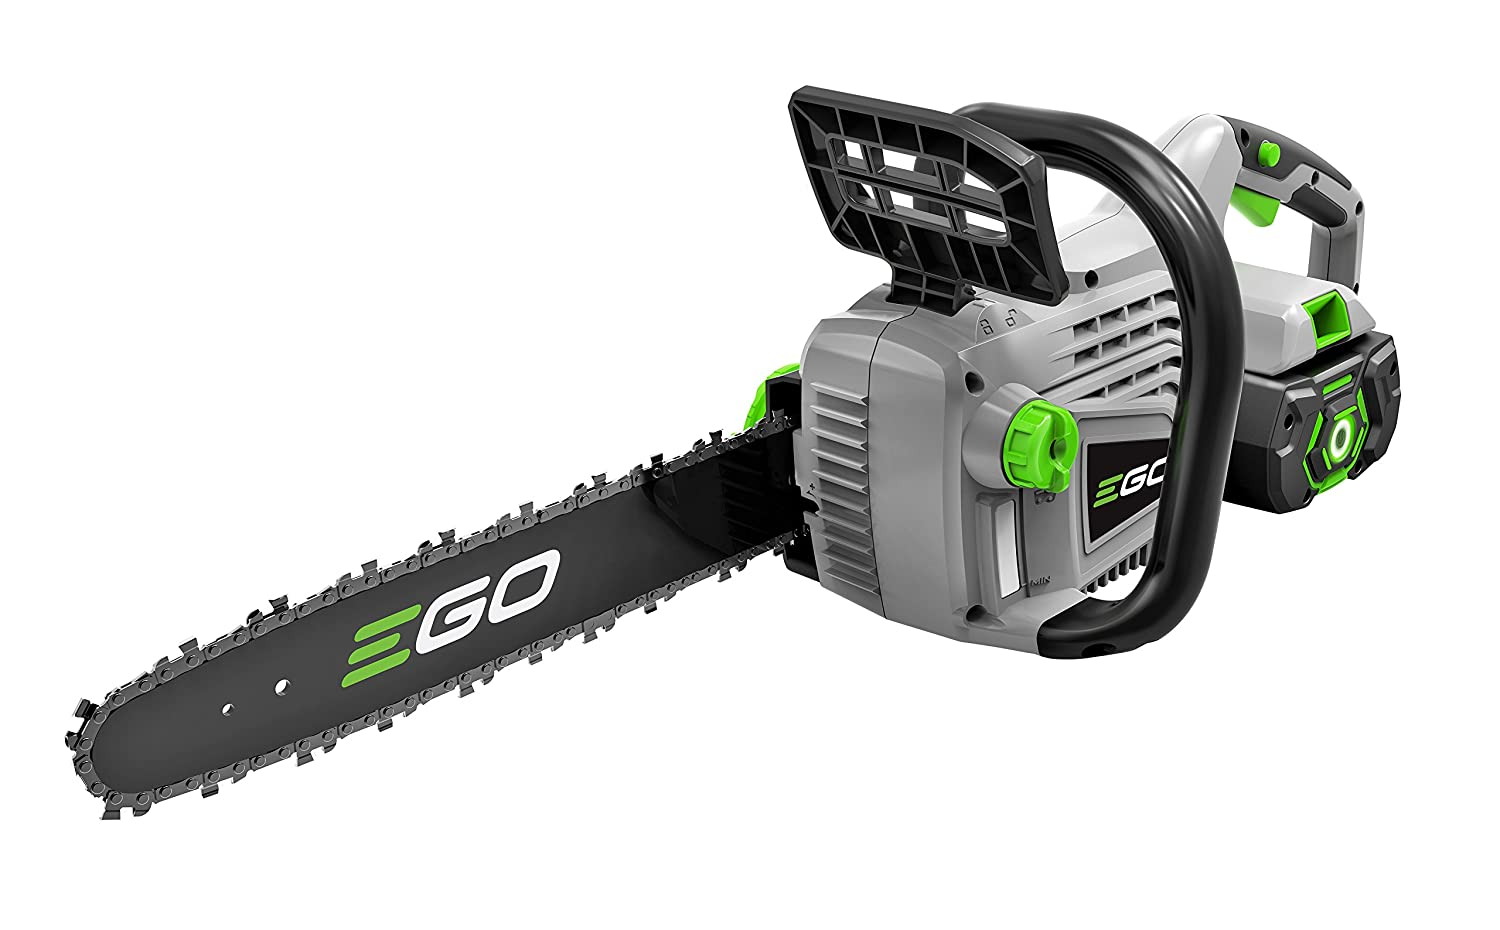 EGO Power+ 14-Inch 56-Volt Lithium-Ion Cordless Chain Saw